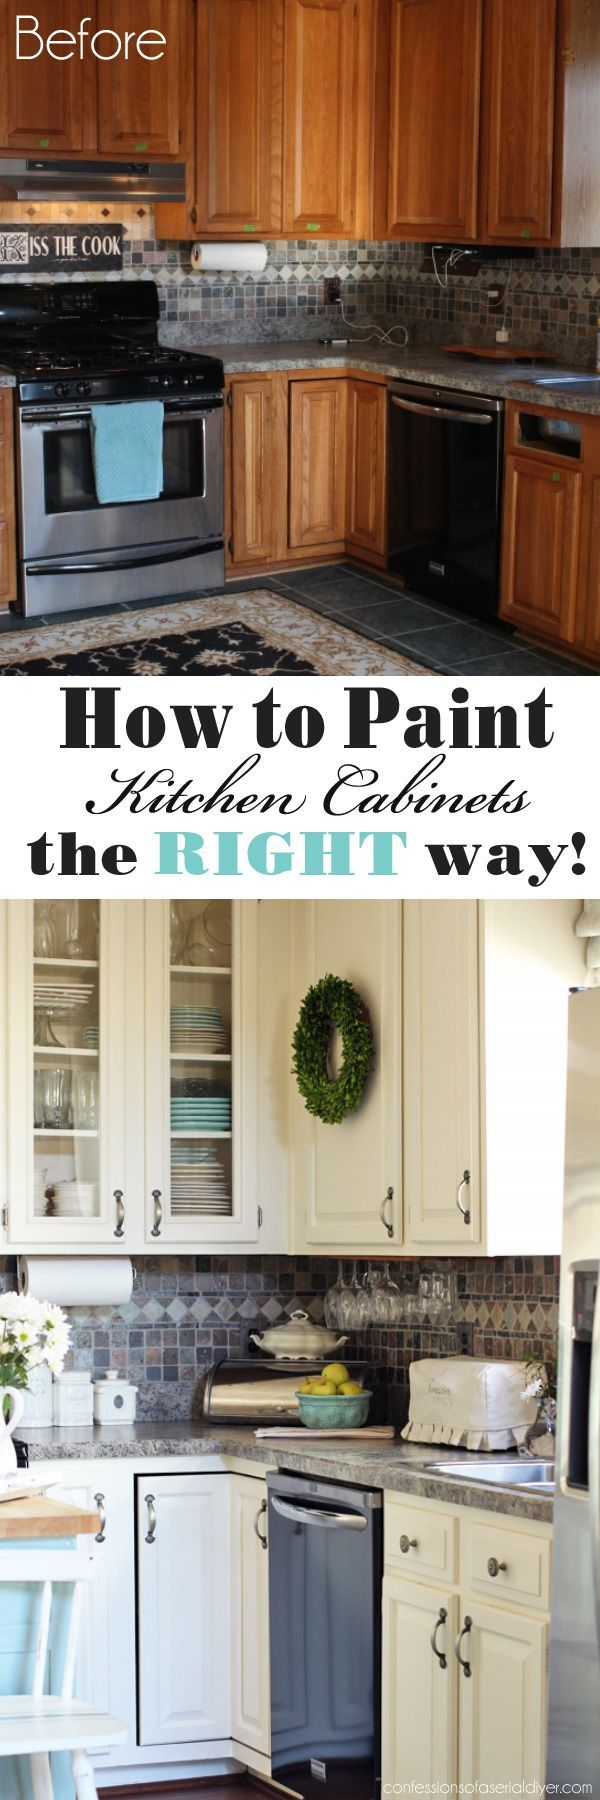 How to Paint Kitchen Cabinets (A Step-by-Step Guide) | Diy ...